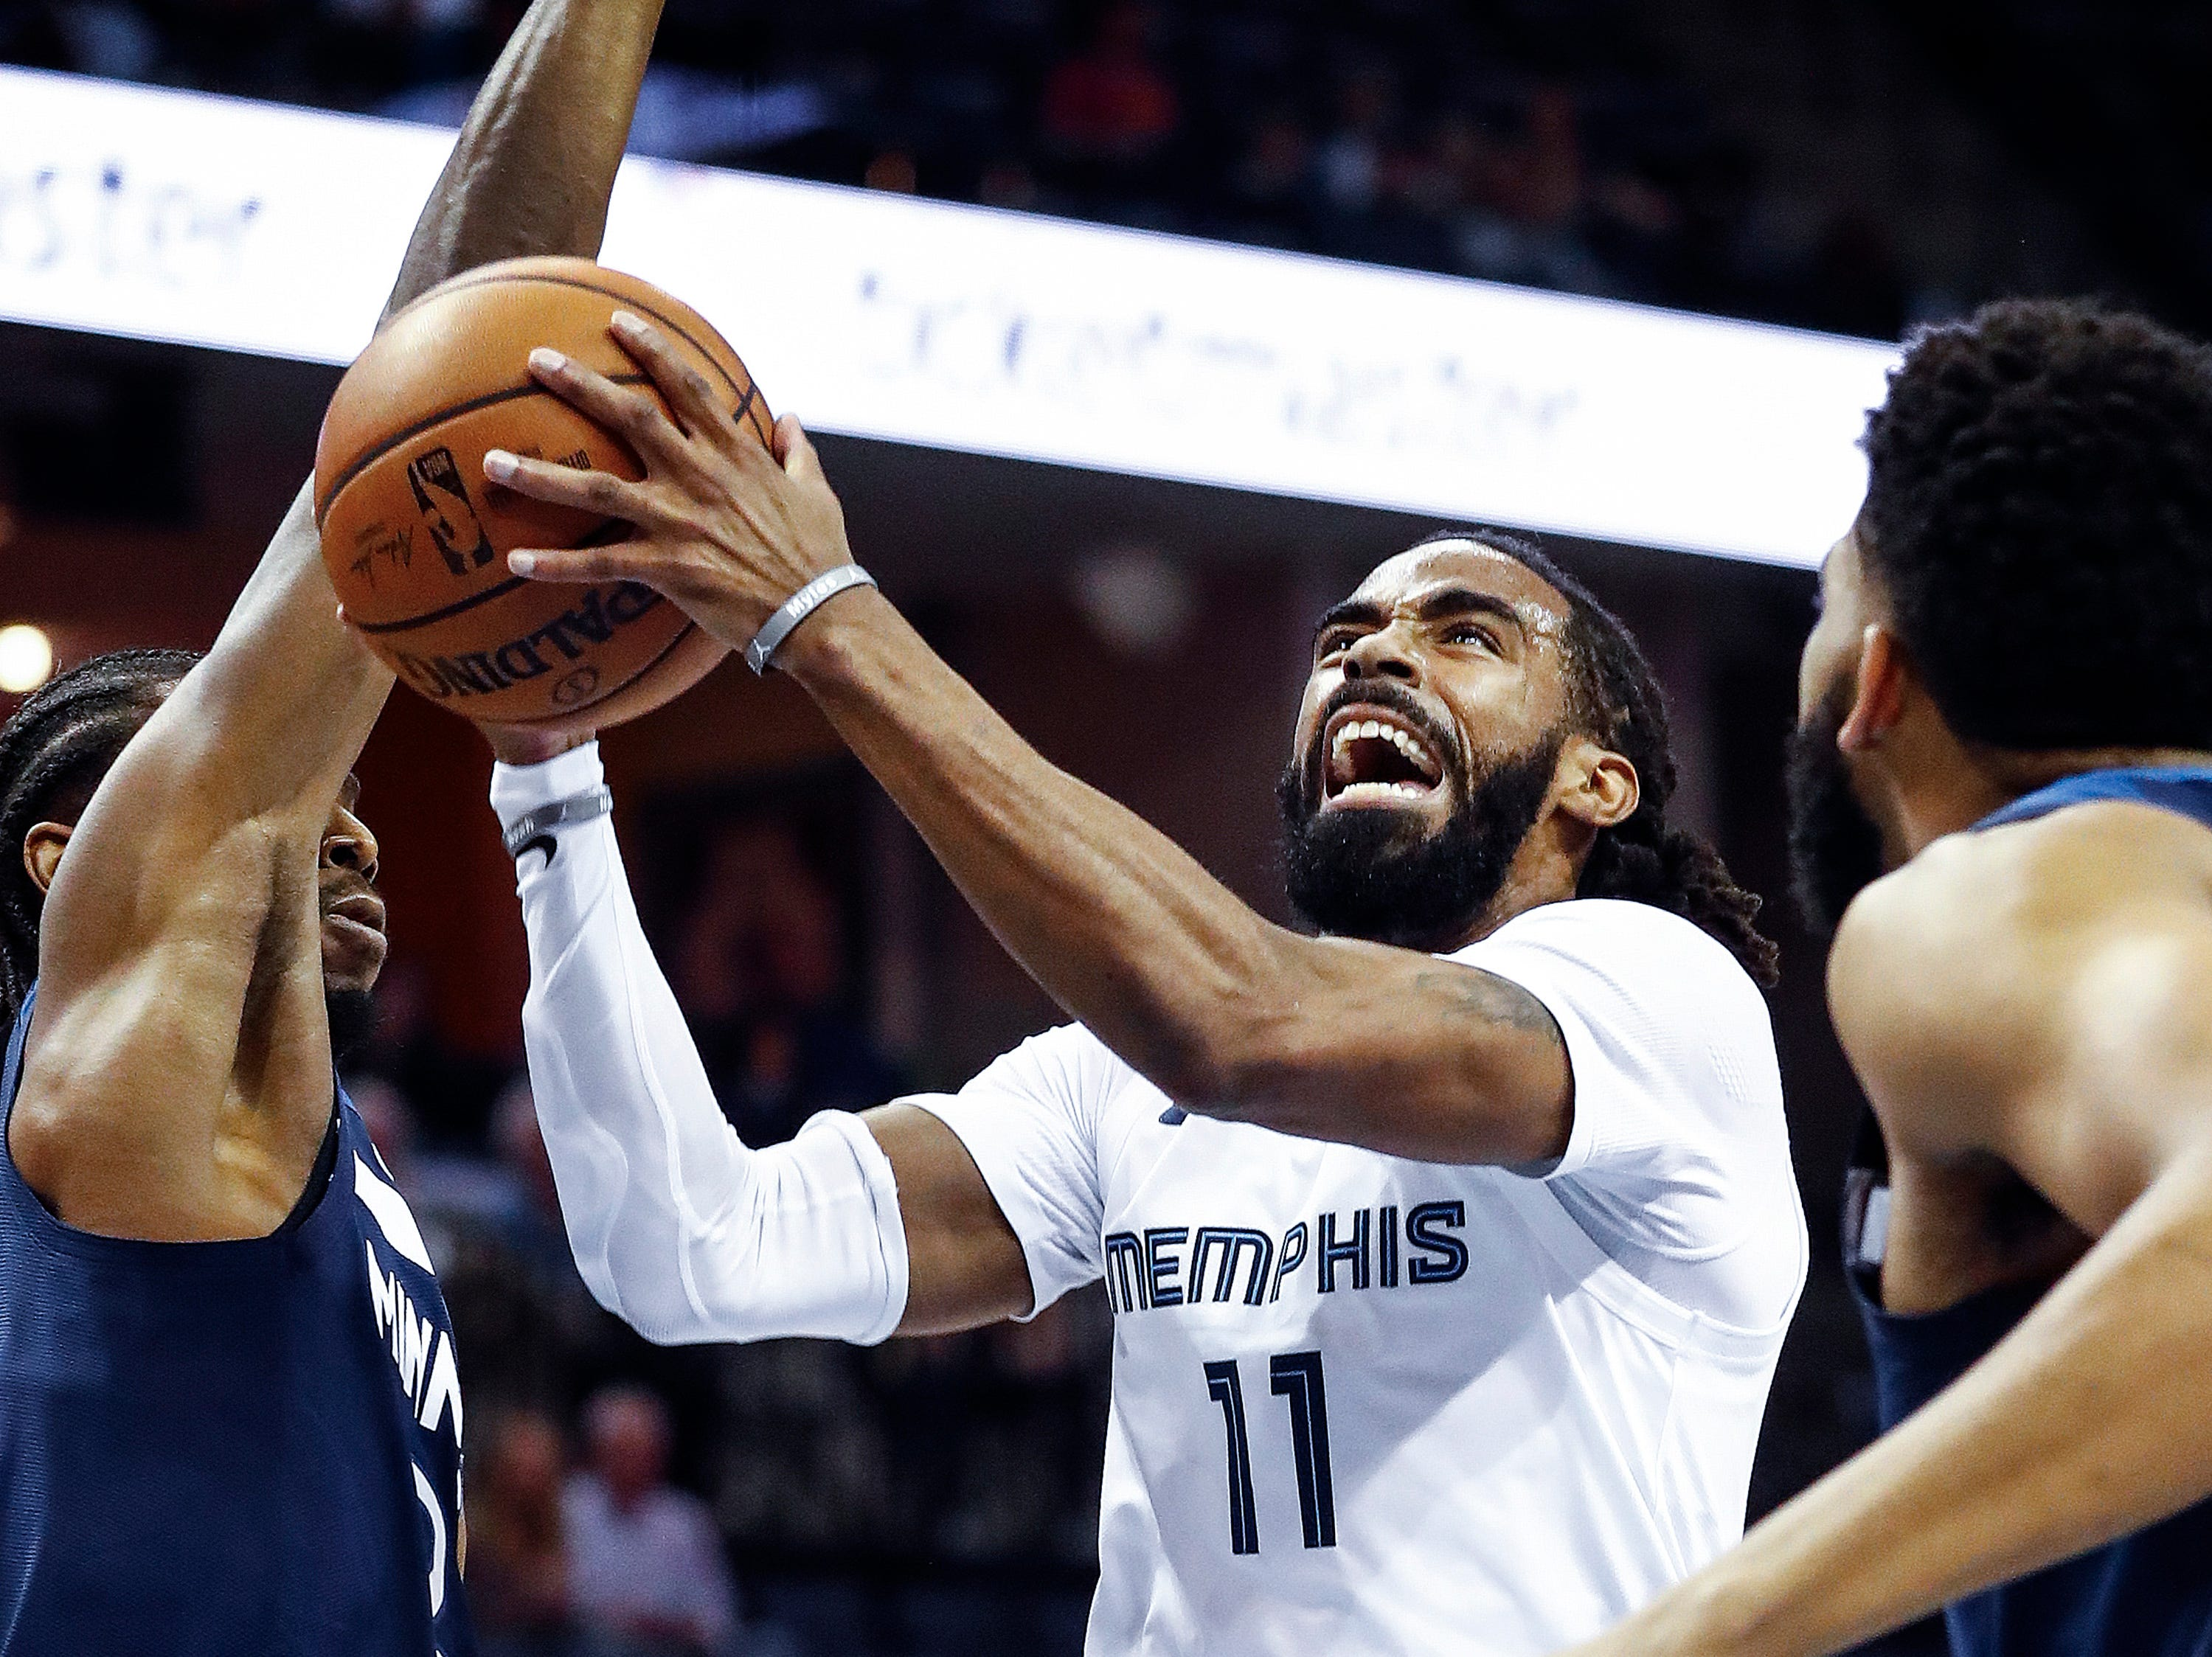 Memphis Grizzlies guard Mike Conley drives the lane against the Minnesota Timberwolves defense during action at the FedExForum in Memphis, Tenn., Tuesday, February 5, 2019.